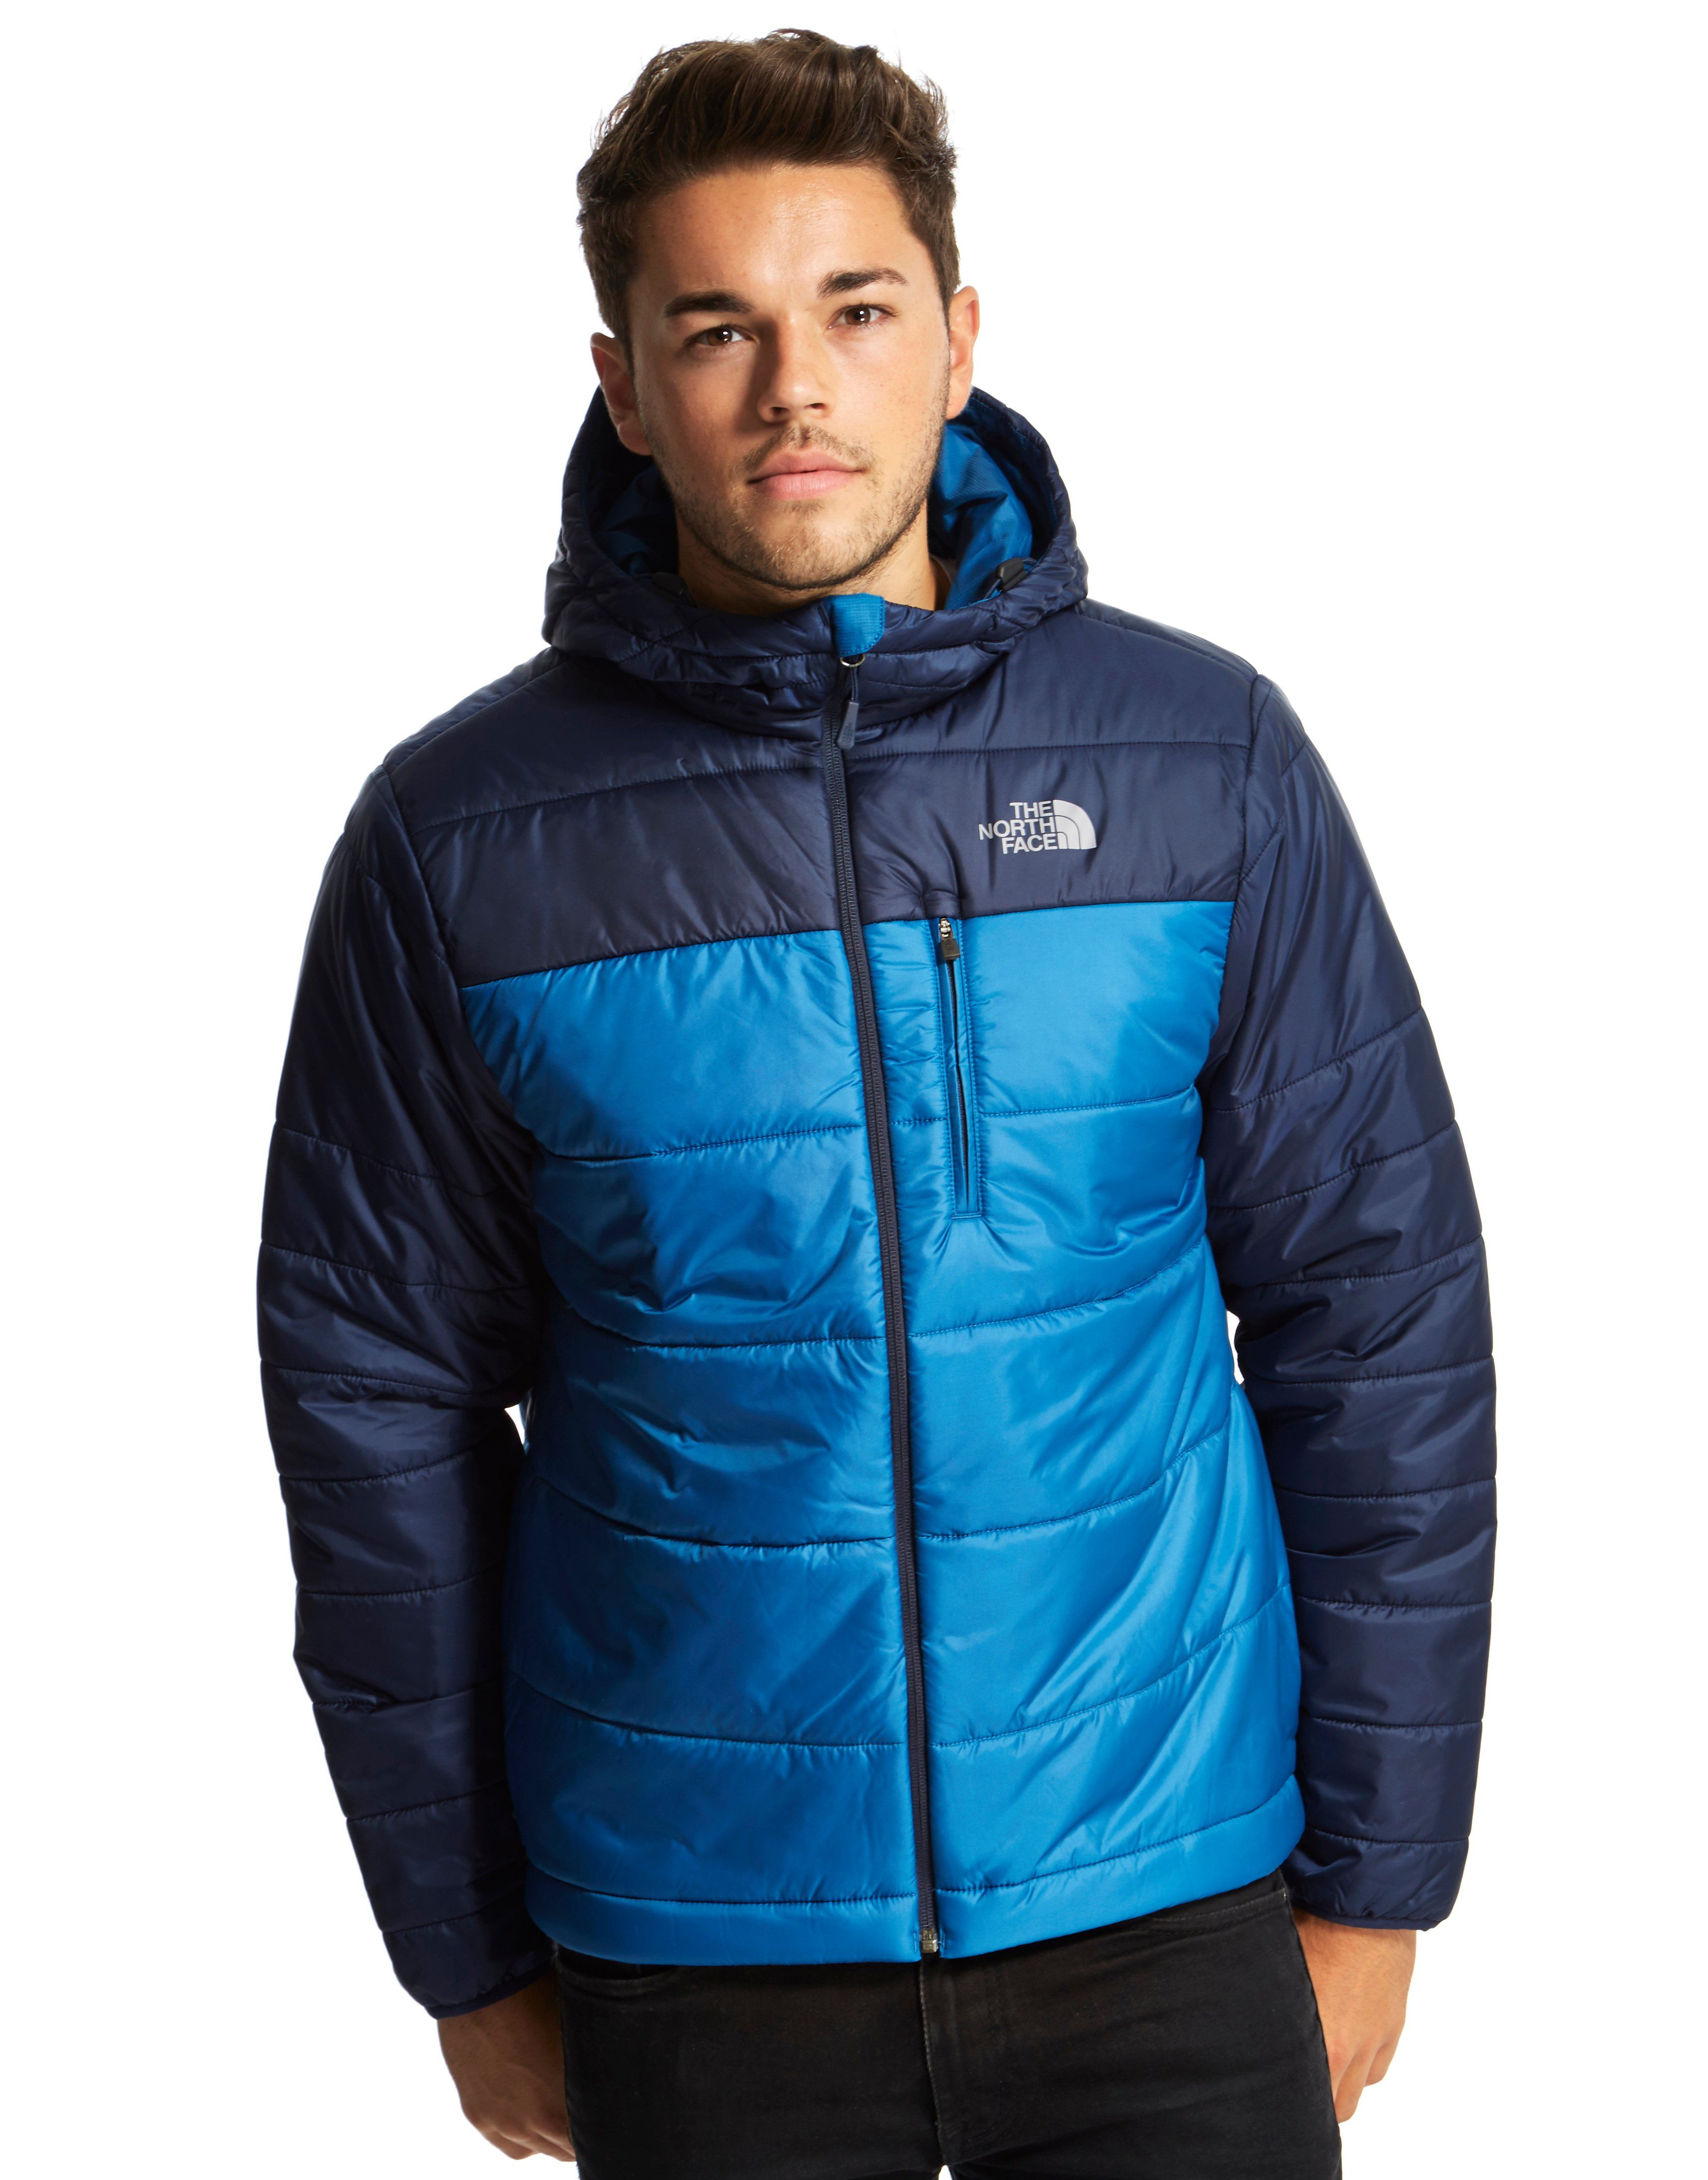 ... discount code for the north face khotan jacket the north face khotan  jacket jd sports f6403 857a3db72